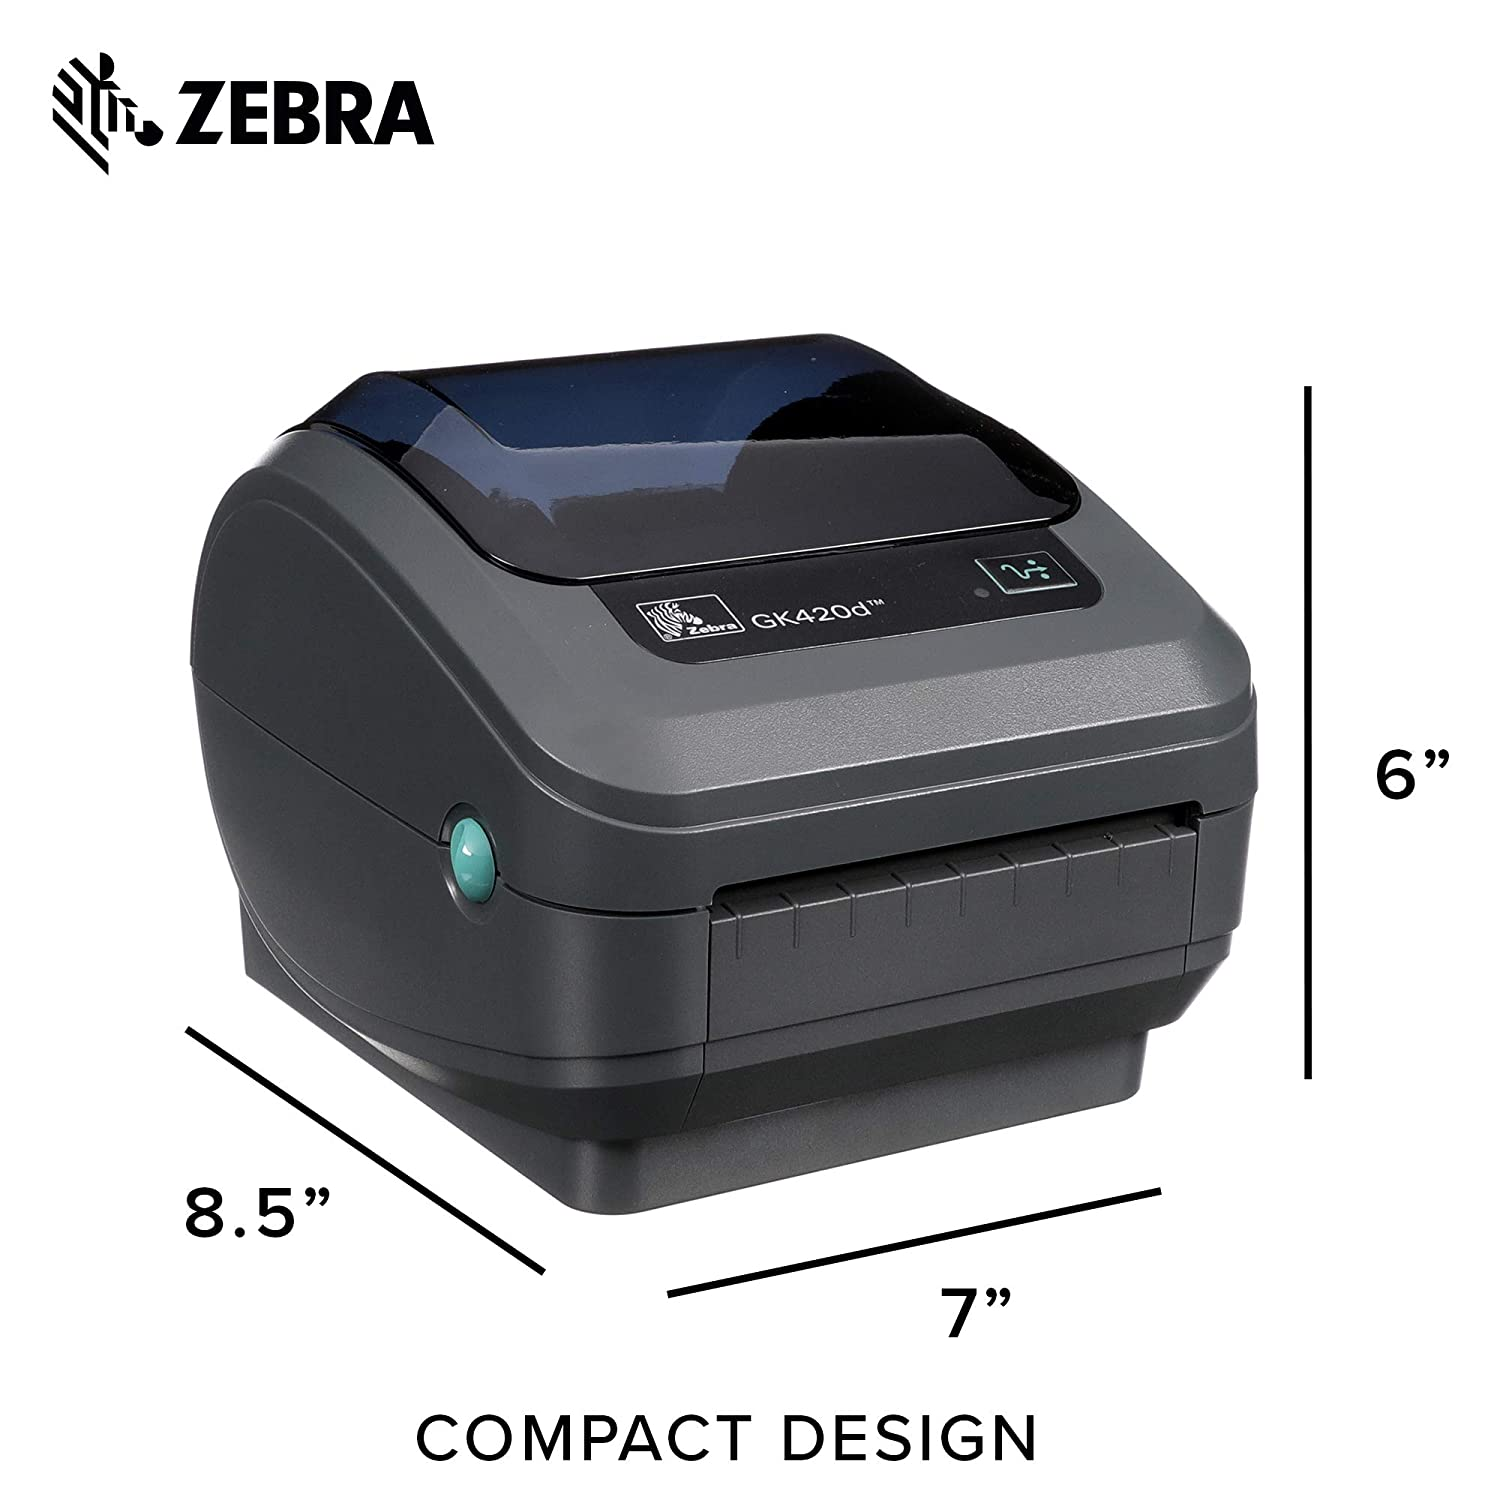 Zebra GK420d Direct Thermal Desktop Printer (GK42-202210-000)